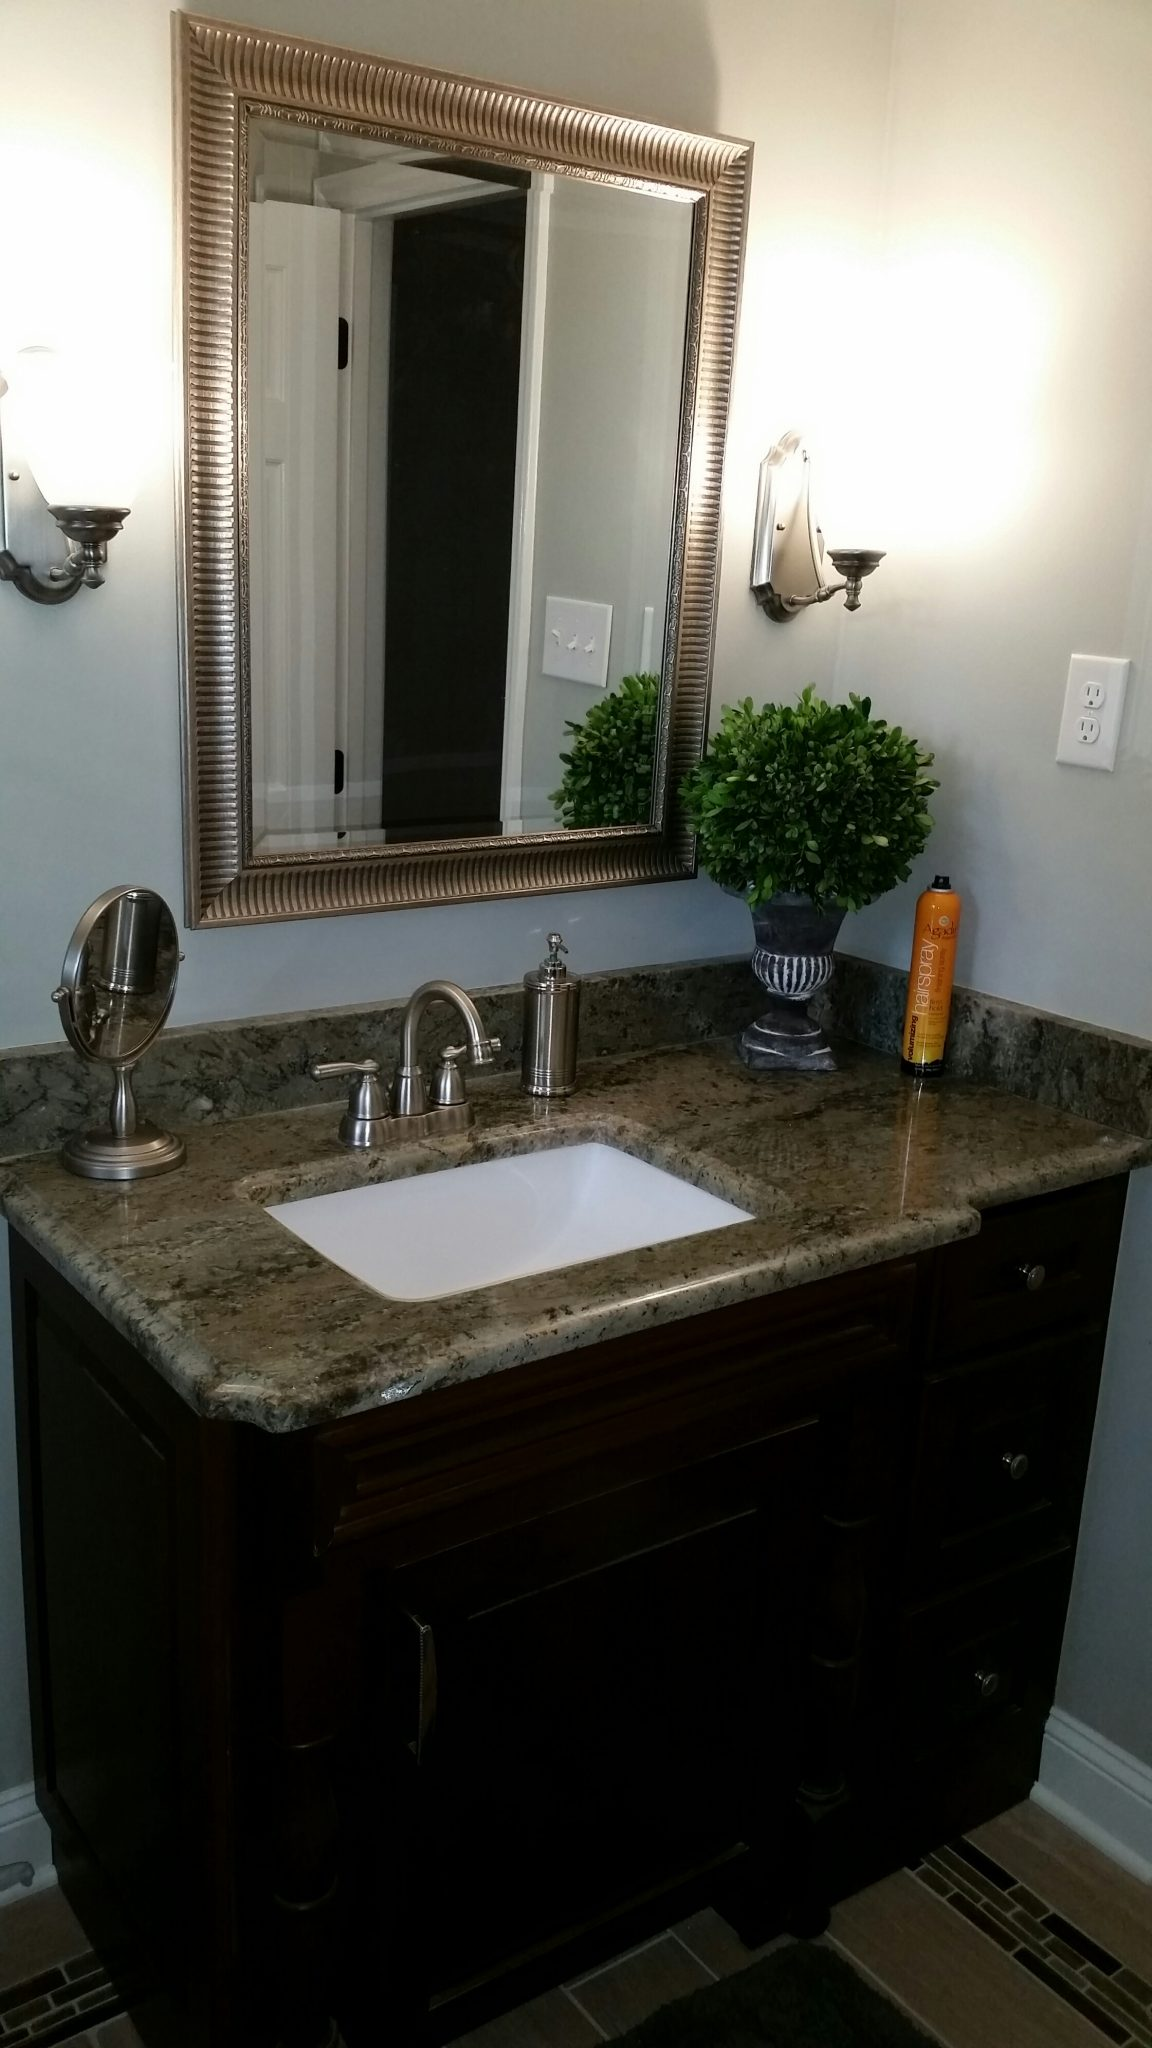 roi remodel-edgewood cabinetry